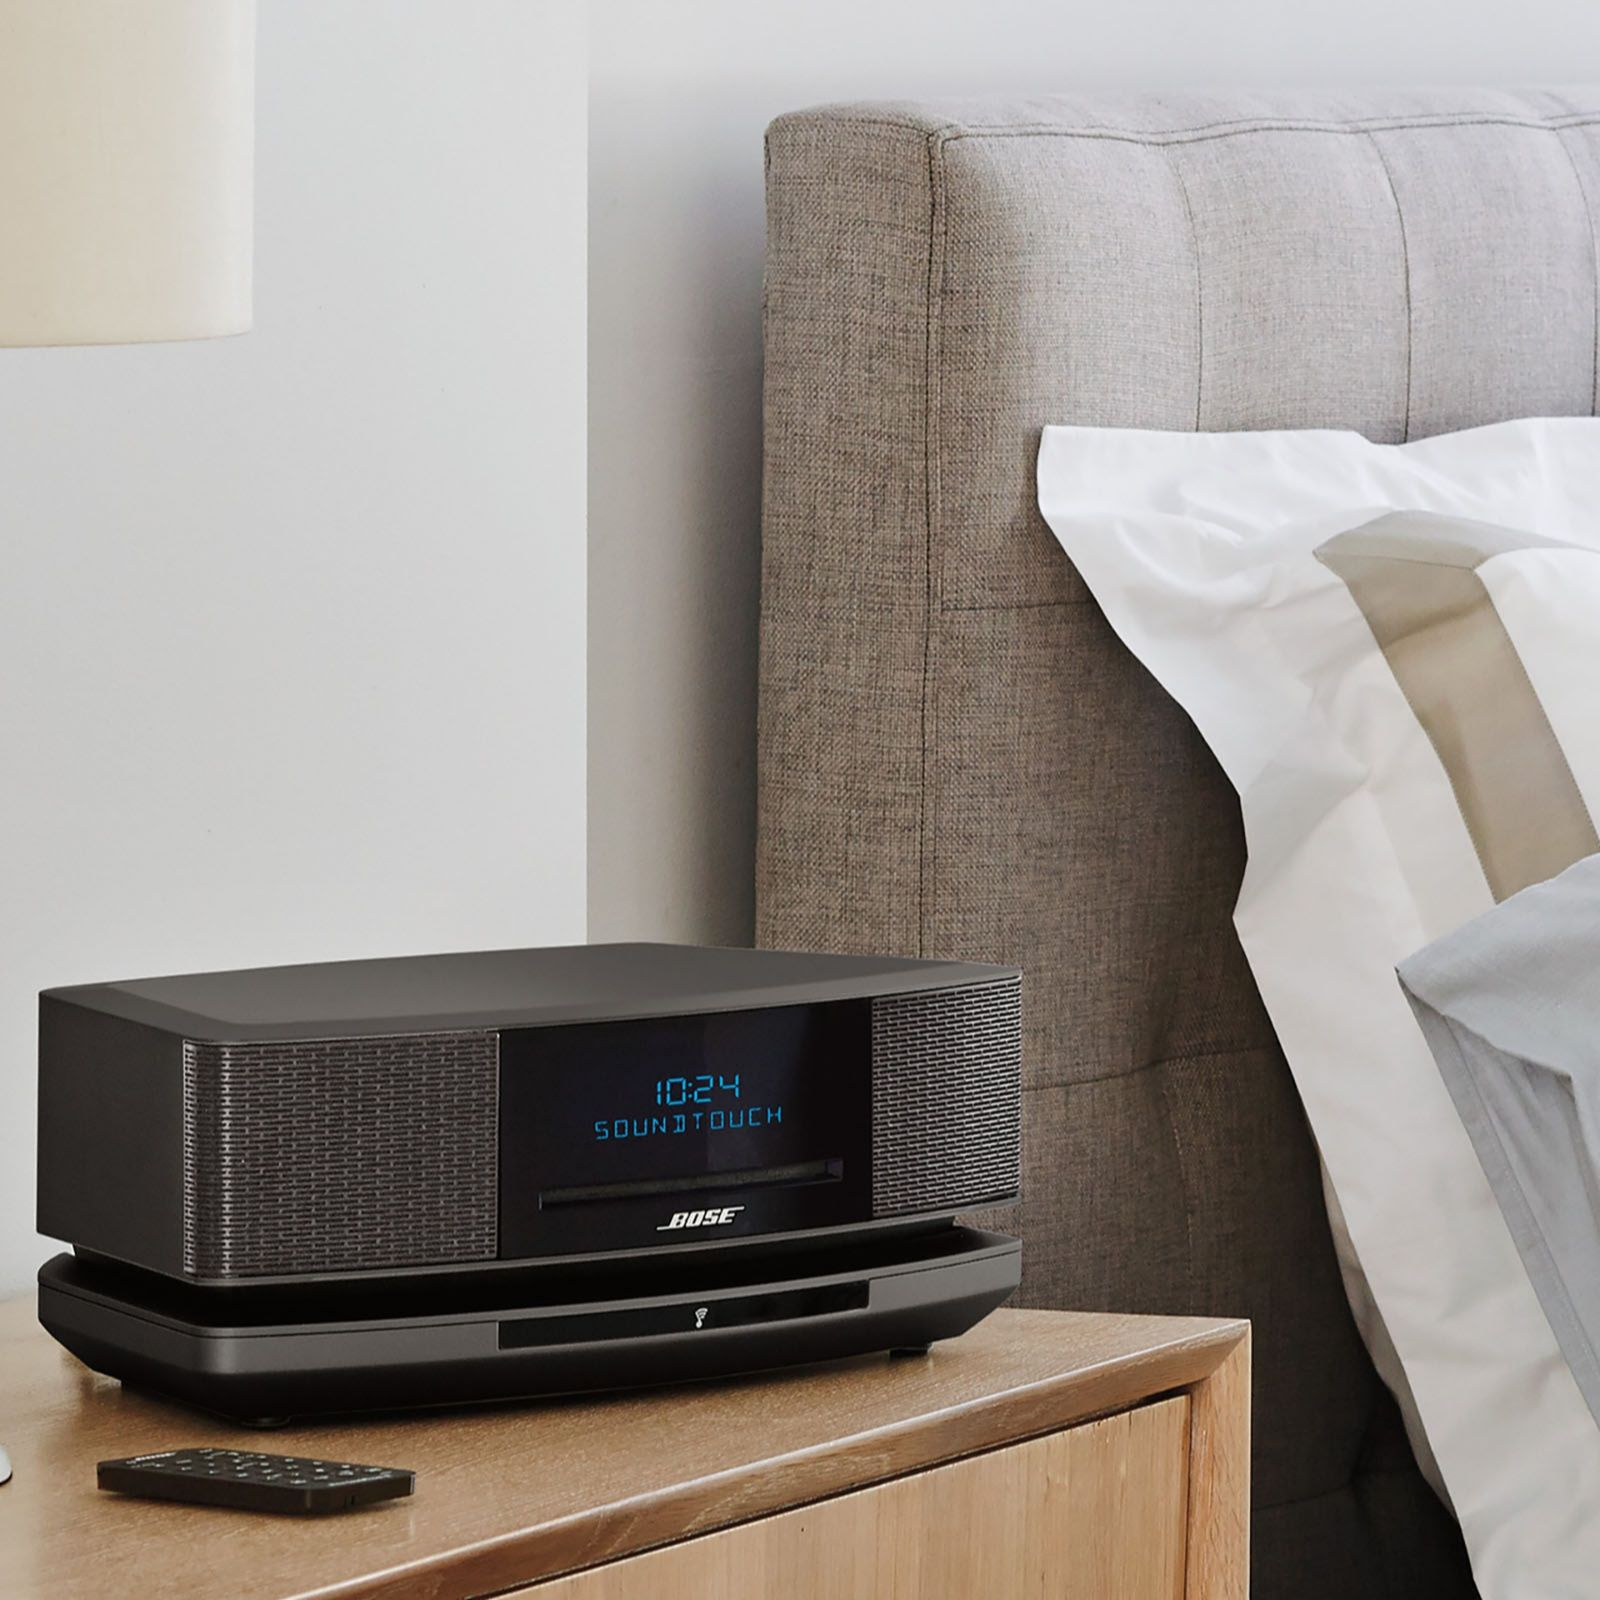 Bose SoundTouch Wave Music System IV with DAB/FM Radio, CD Player &  Bluetooth - QVC UK